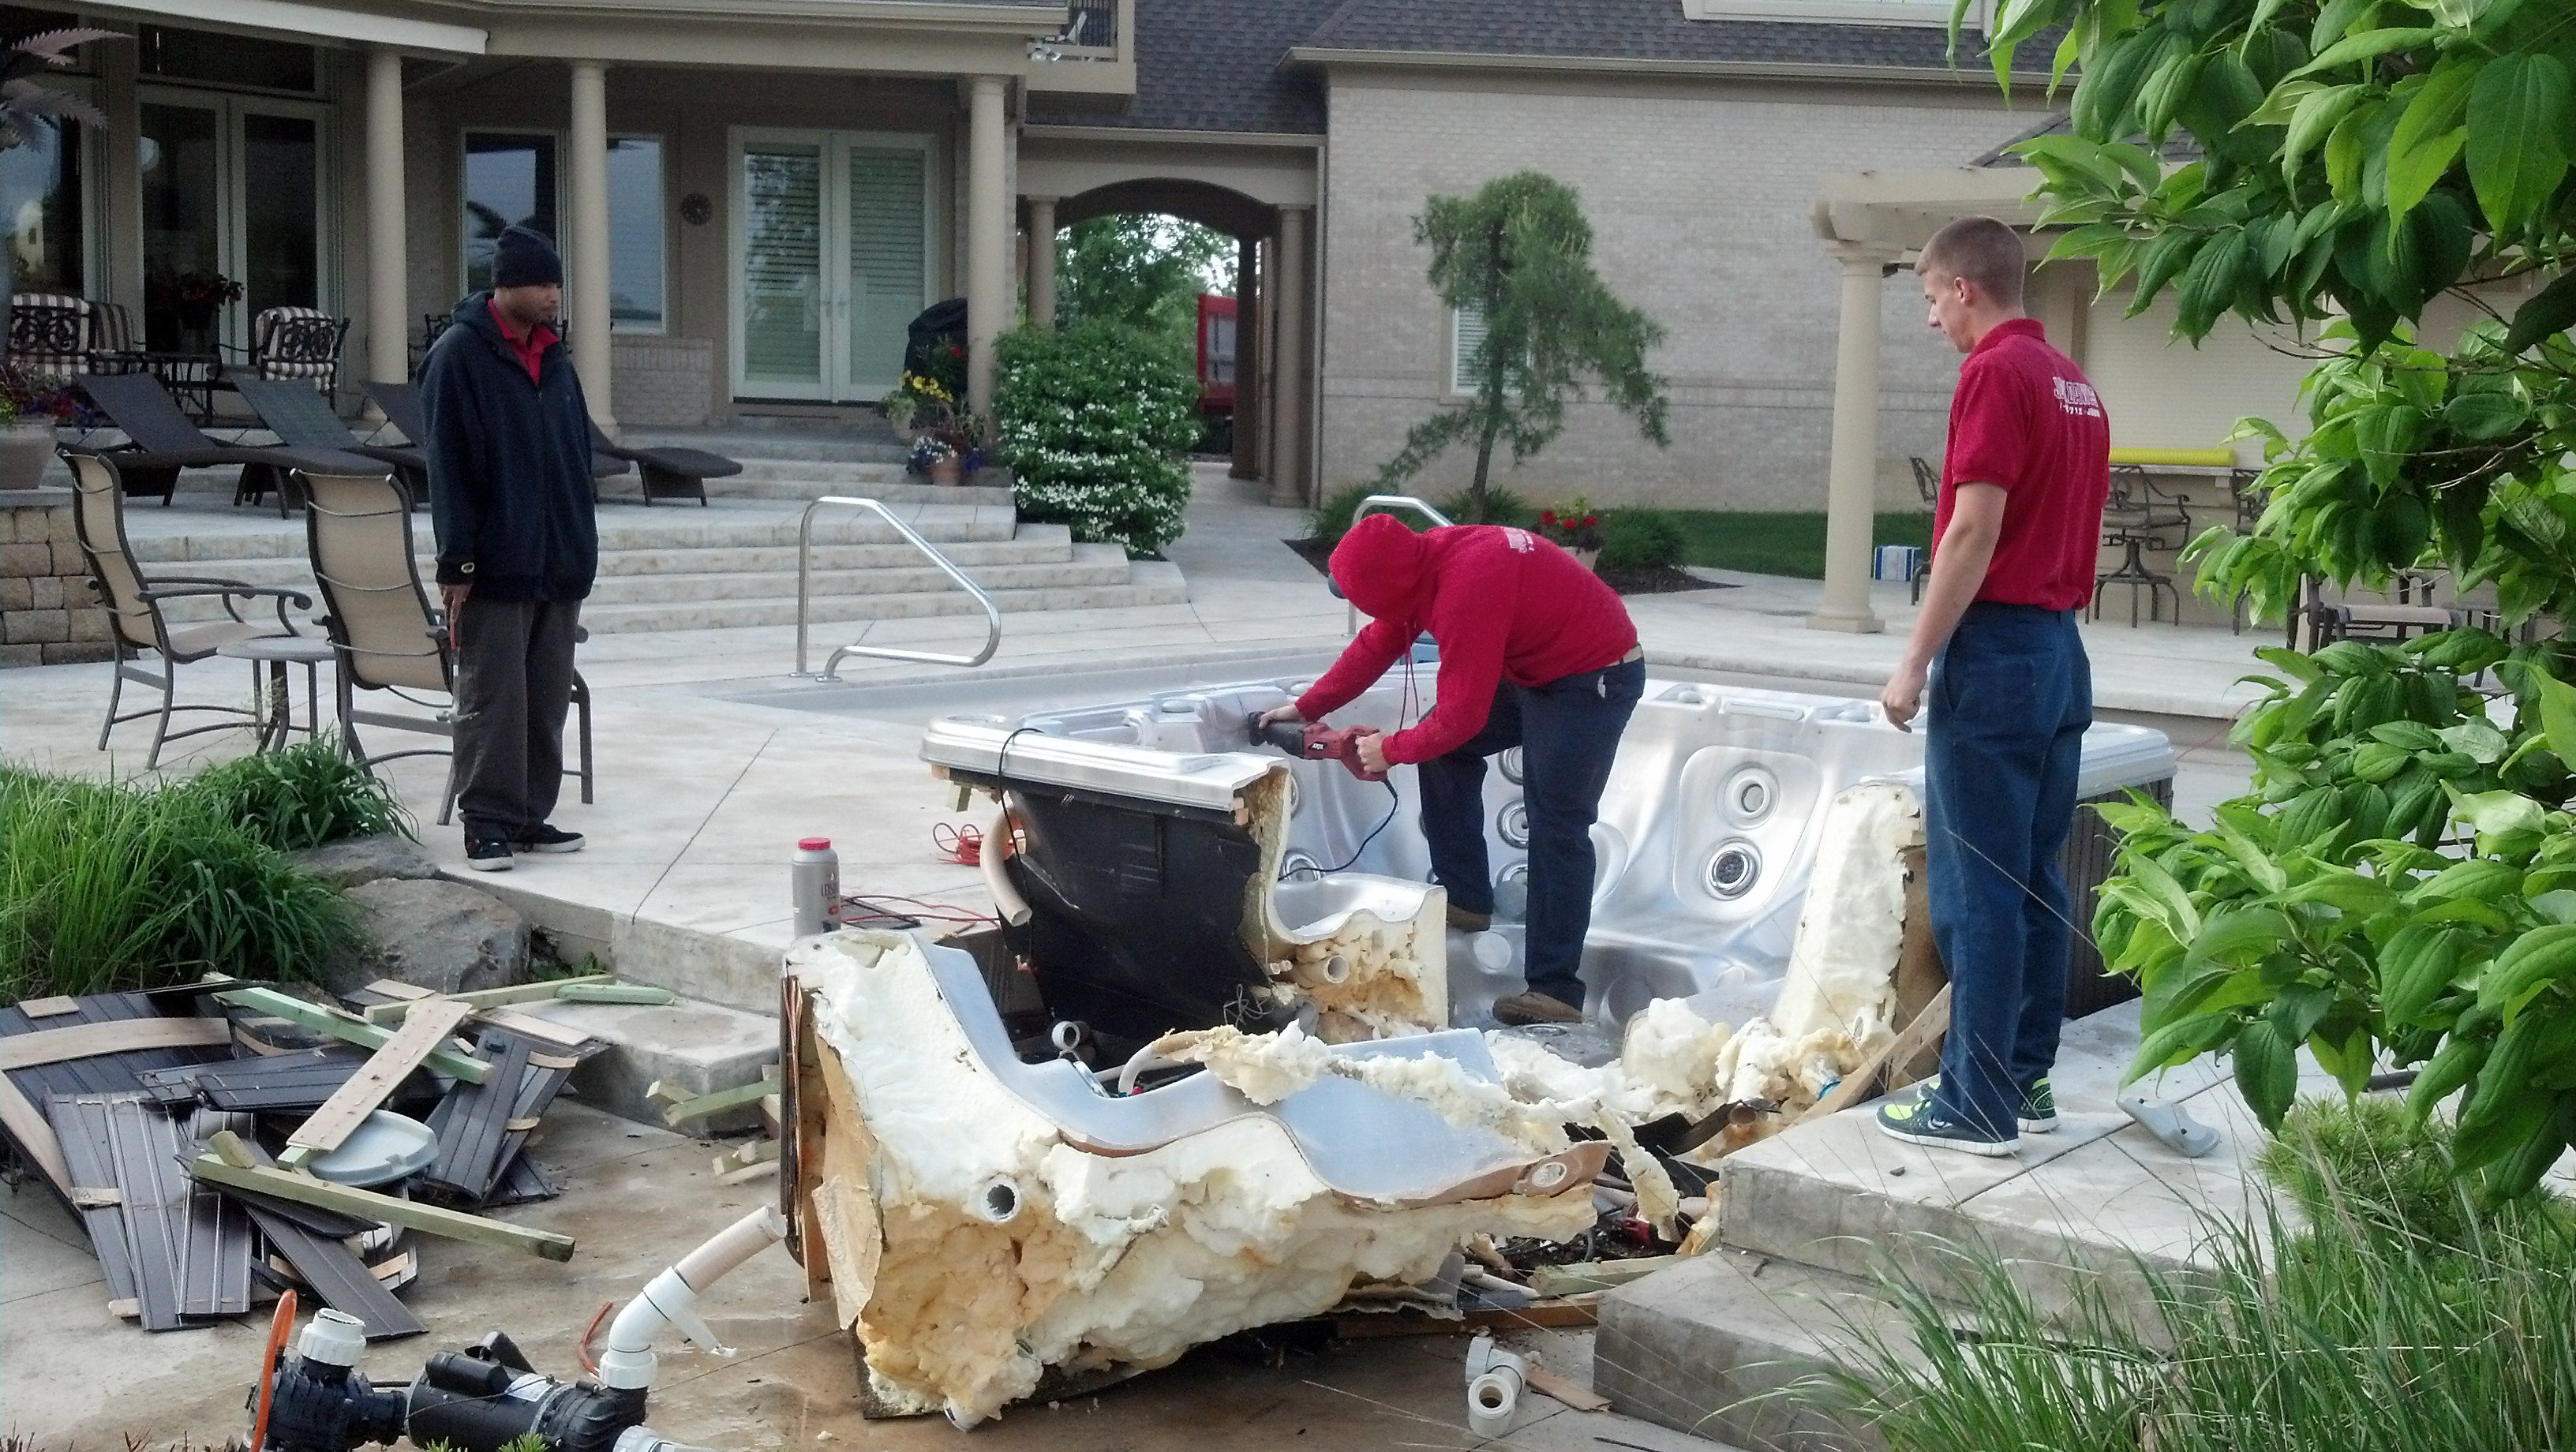 How much does it cost for hot tub removal services?- Fire Dawgs